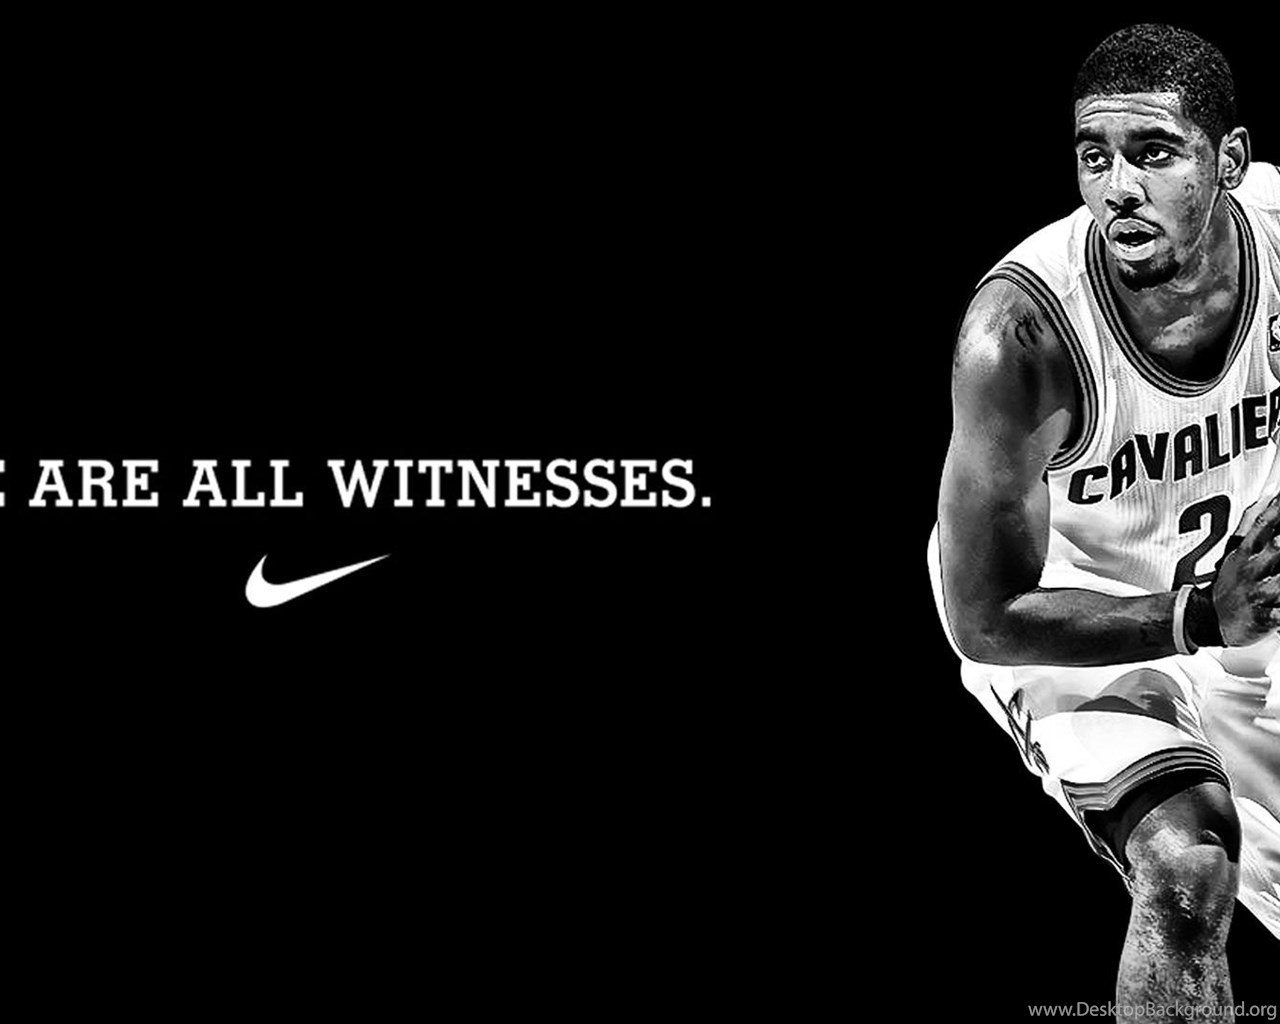 Nike Animated Wallpaper Kyrie Irving Wallpapers Desktop Background